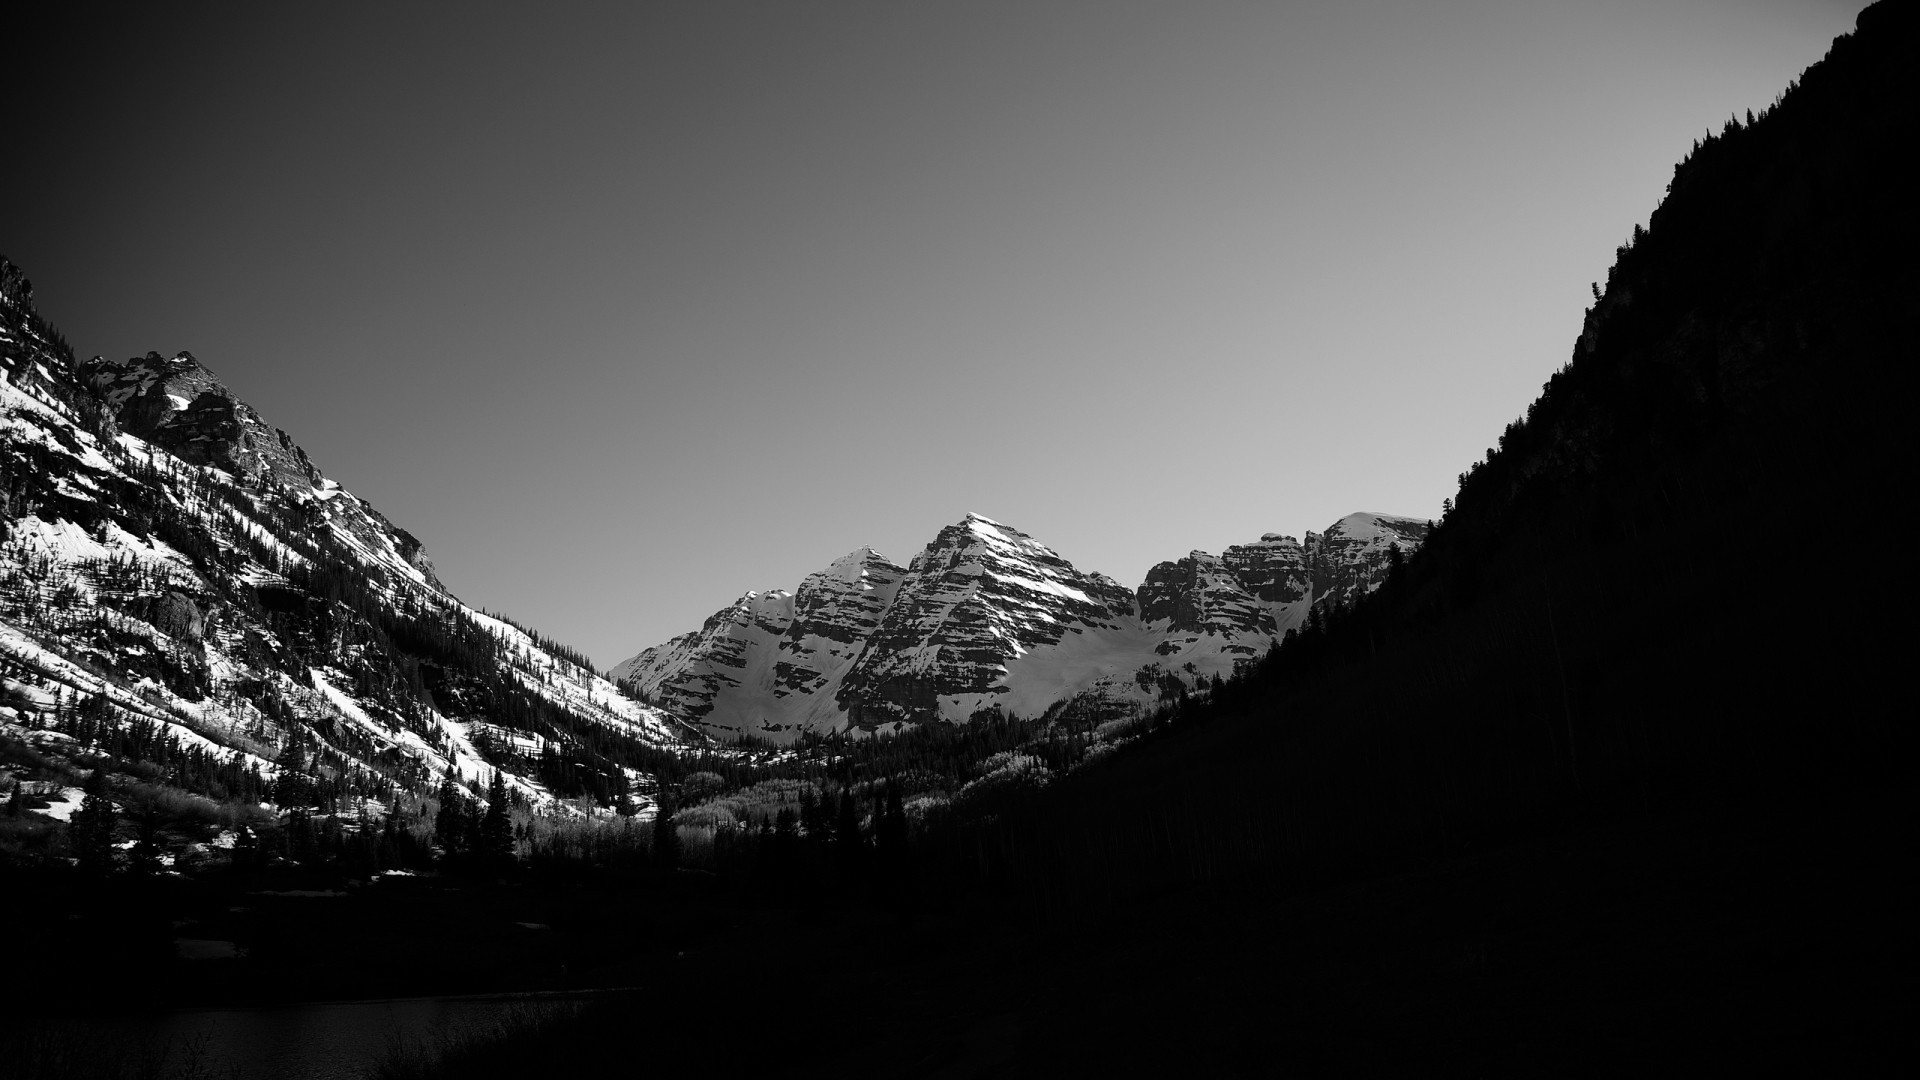 Black And White Nature Photography Wallpaper Black And White